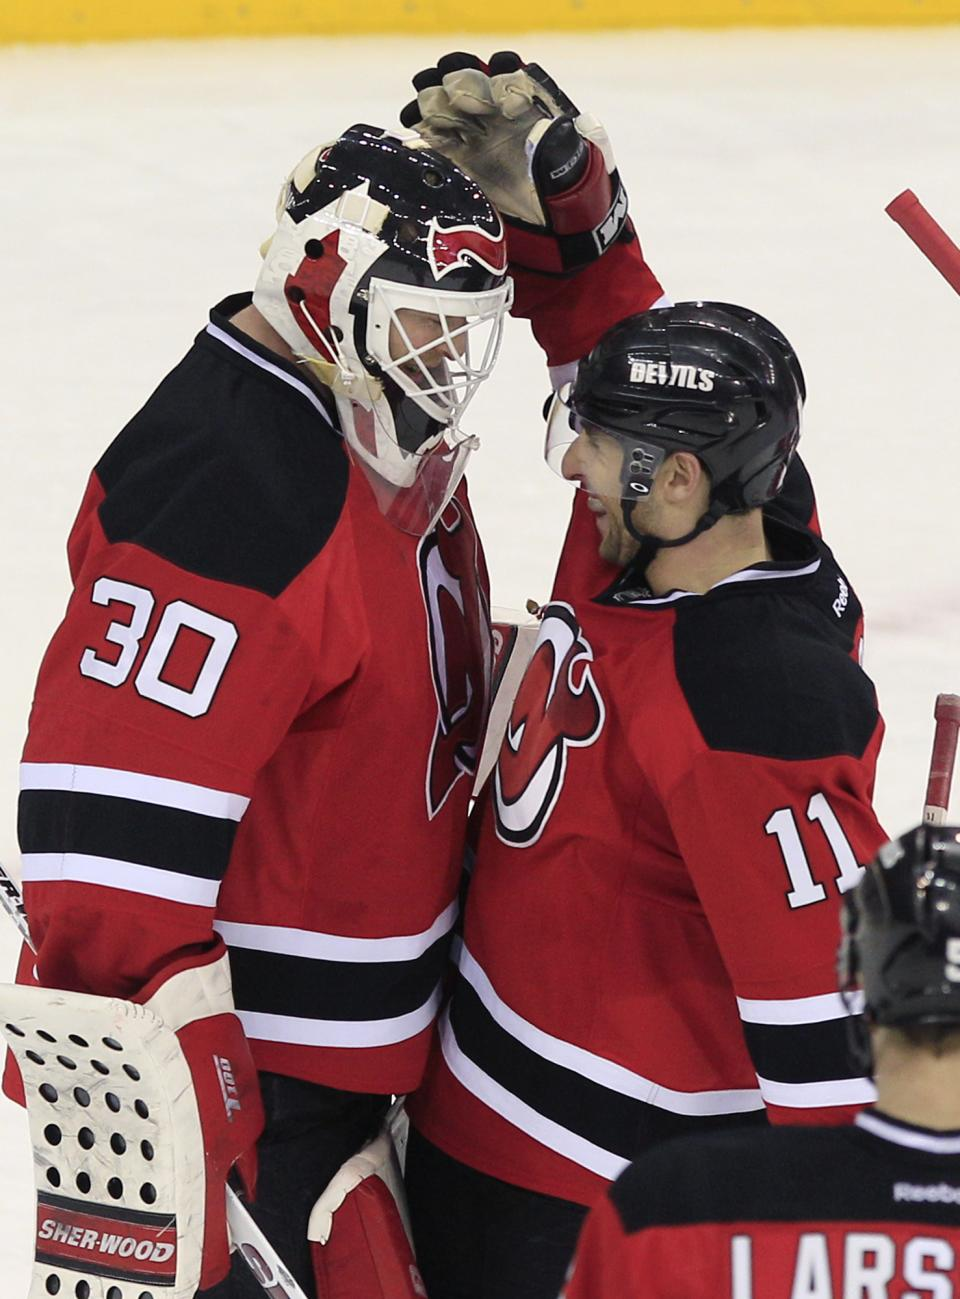 New Jersey Devils' Stephen Gionta, right, celebrates with goalie Martin Brodeur after the Devils defeated the Ottawa Senators 4-2 in an NHL hockey game in Newark, N.J., Saturday, April 7, 2012. (AP Photo/Mel Evans)